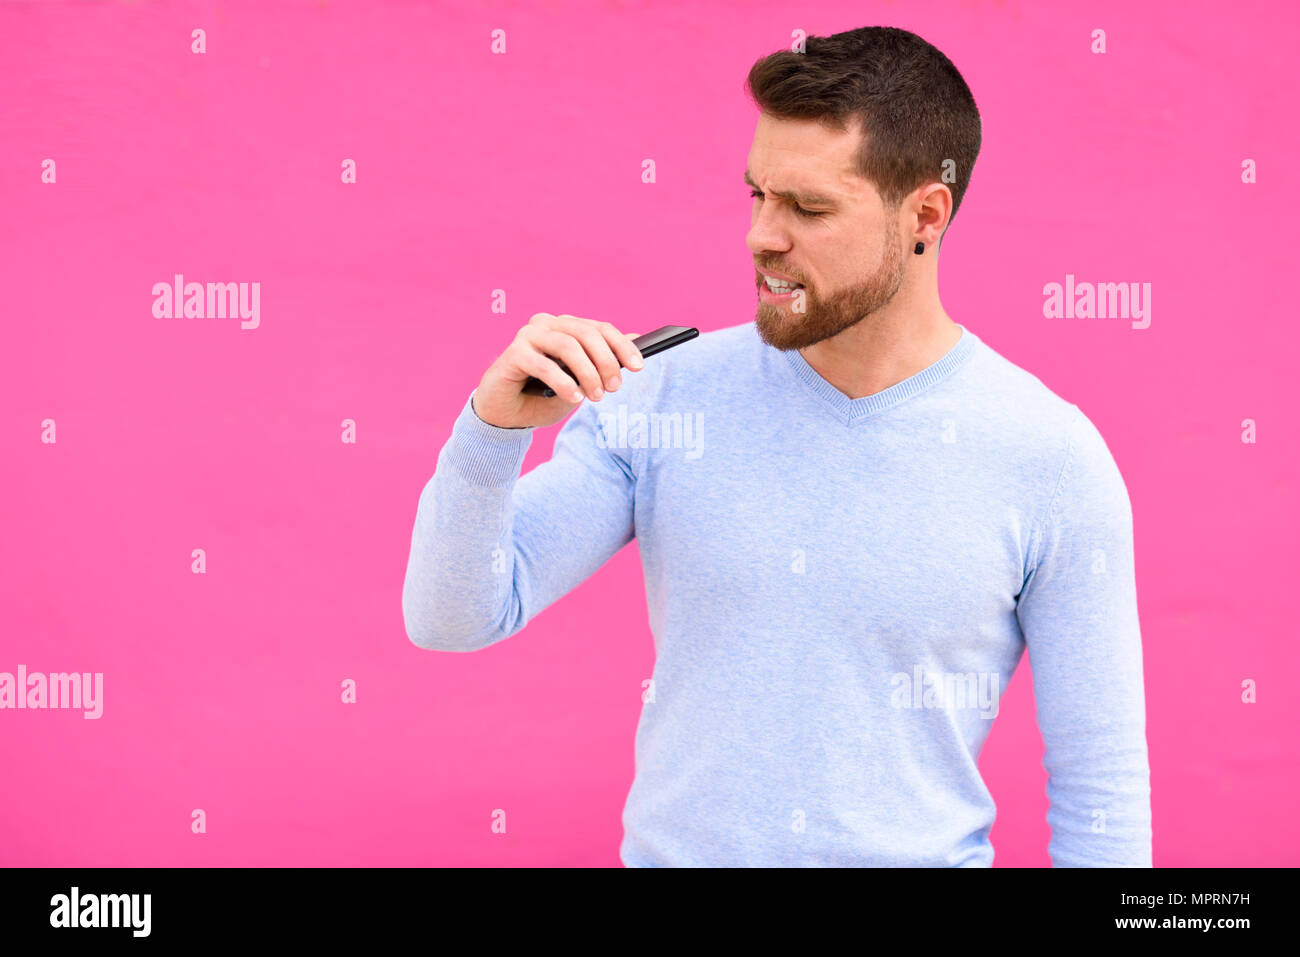 Young man recording a voice note with a smartphone, pink background - Stock Image